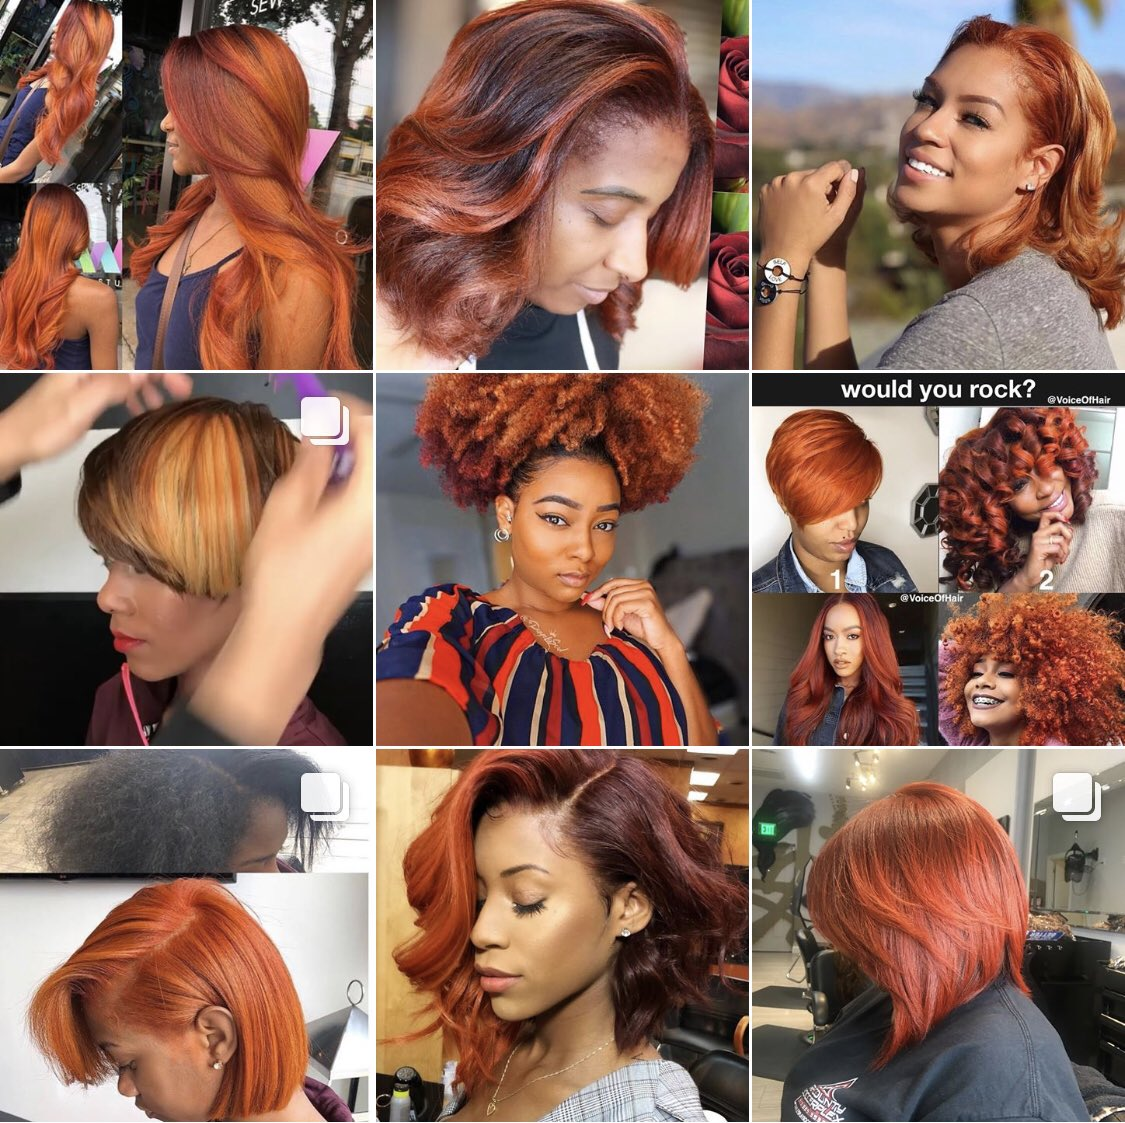 I've wanted this hair color for YEARS, but I'm scared I'll look crazy and I gotta find somebody to do it right.